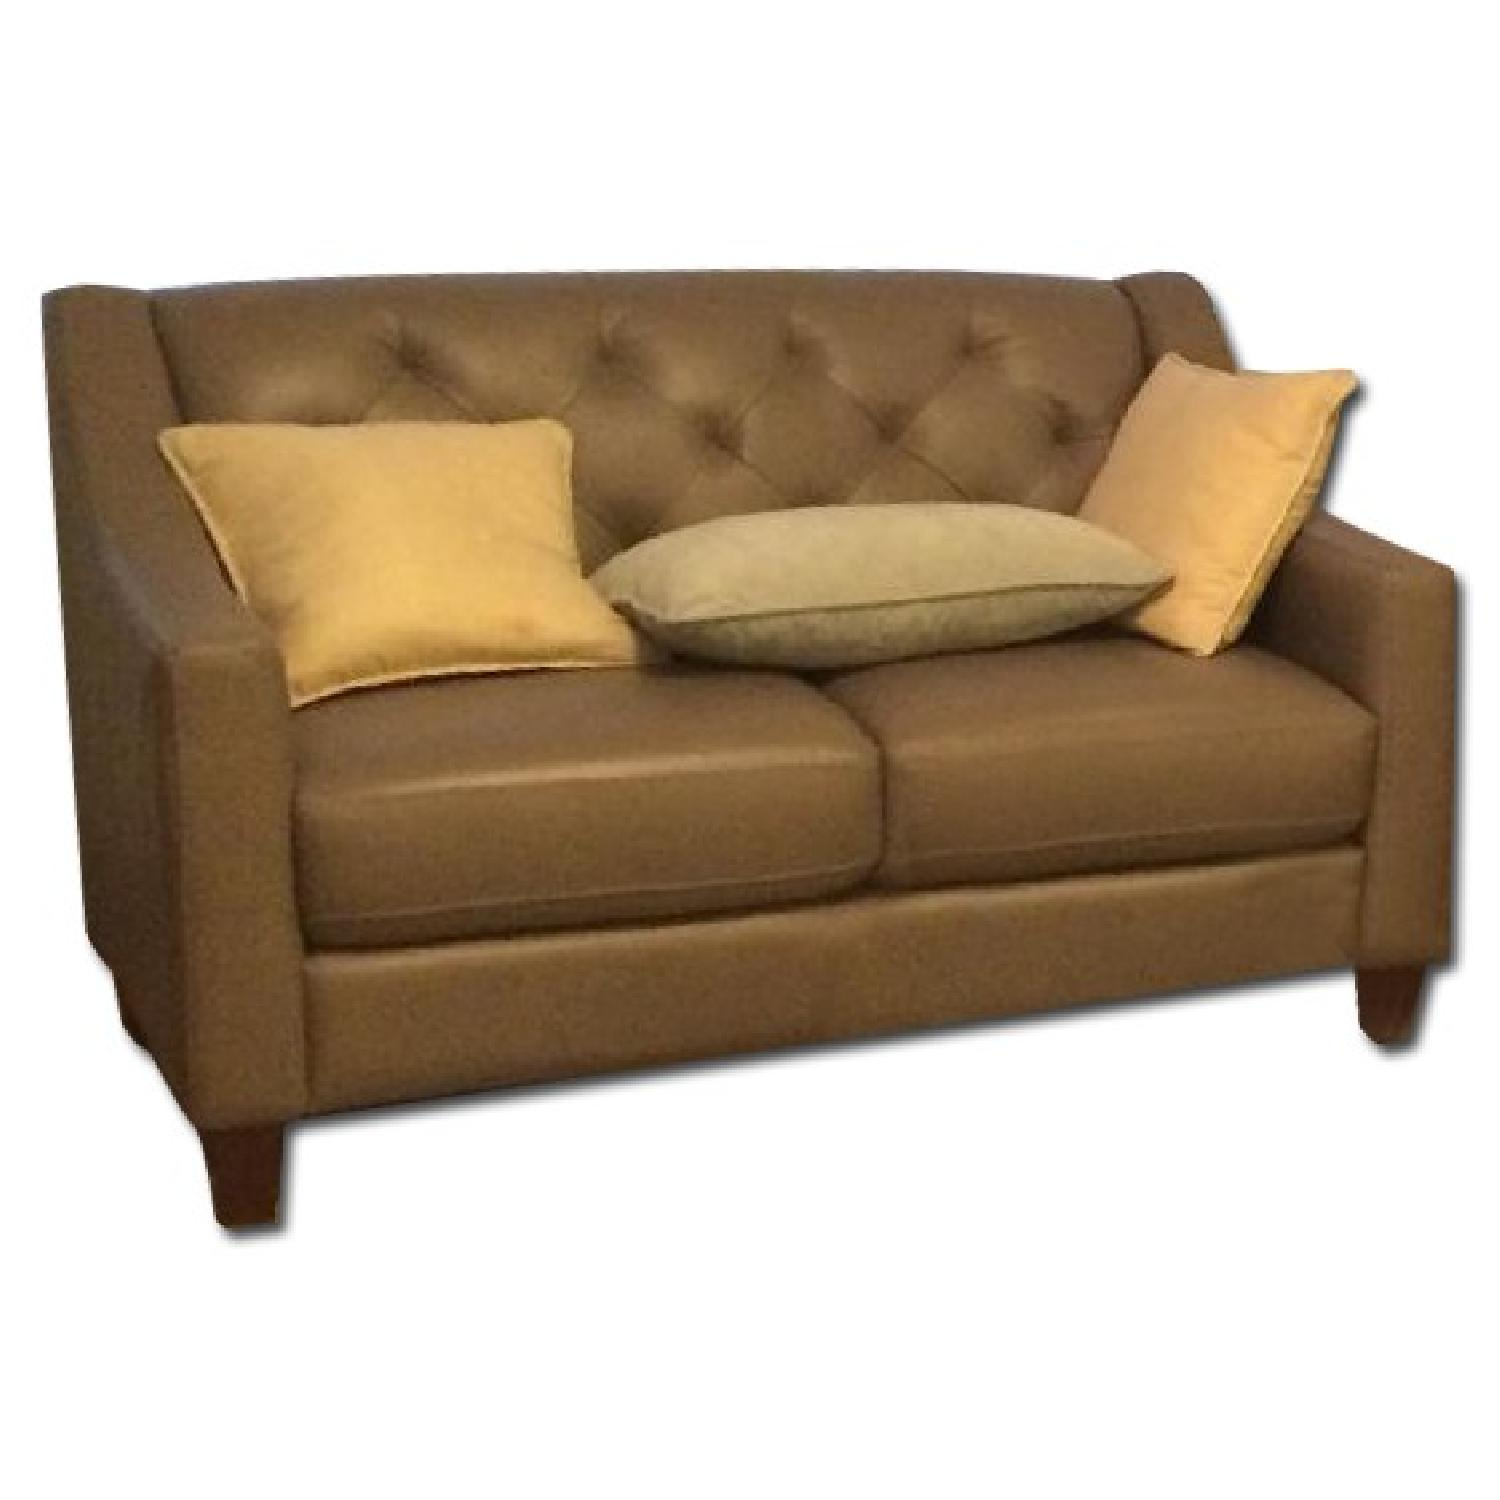 Neutral Gray Tone Leather Couch + Matching Love Seat - image-4